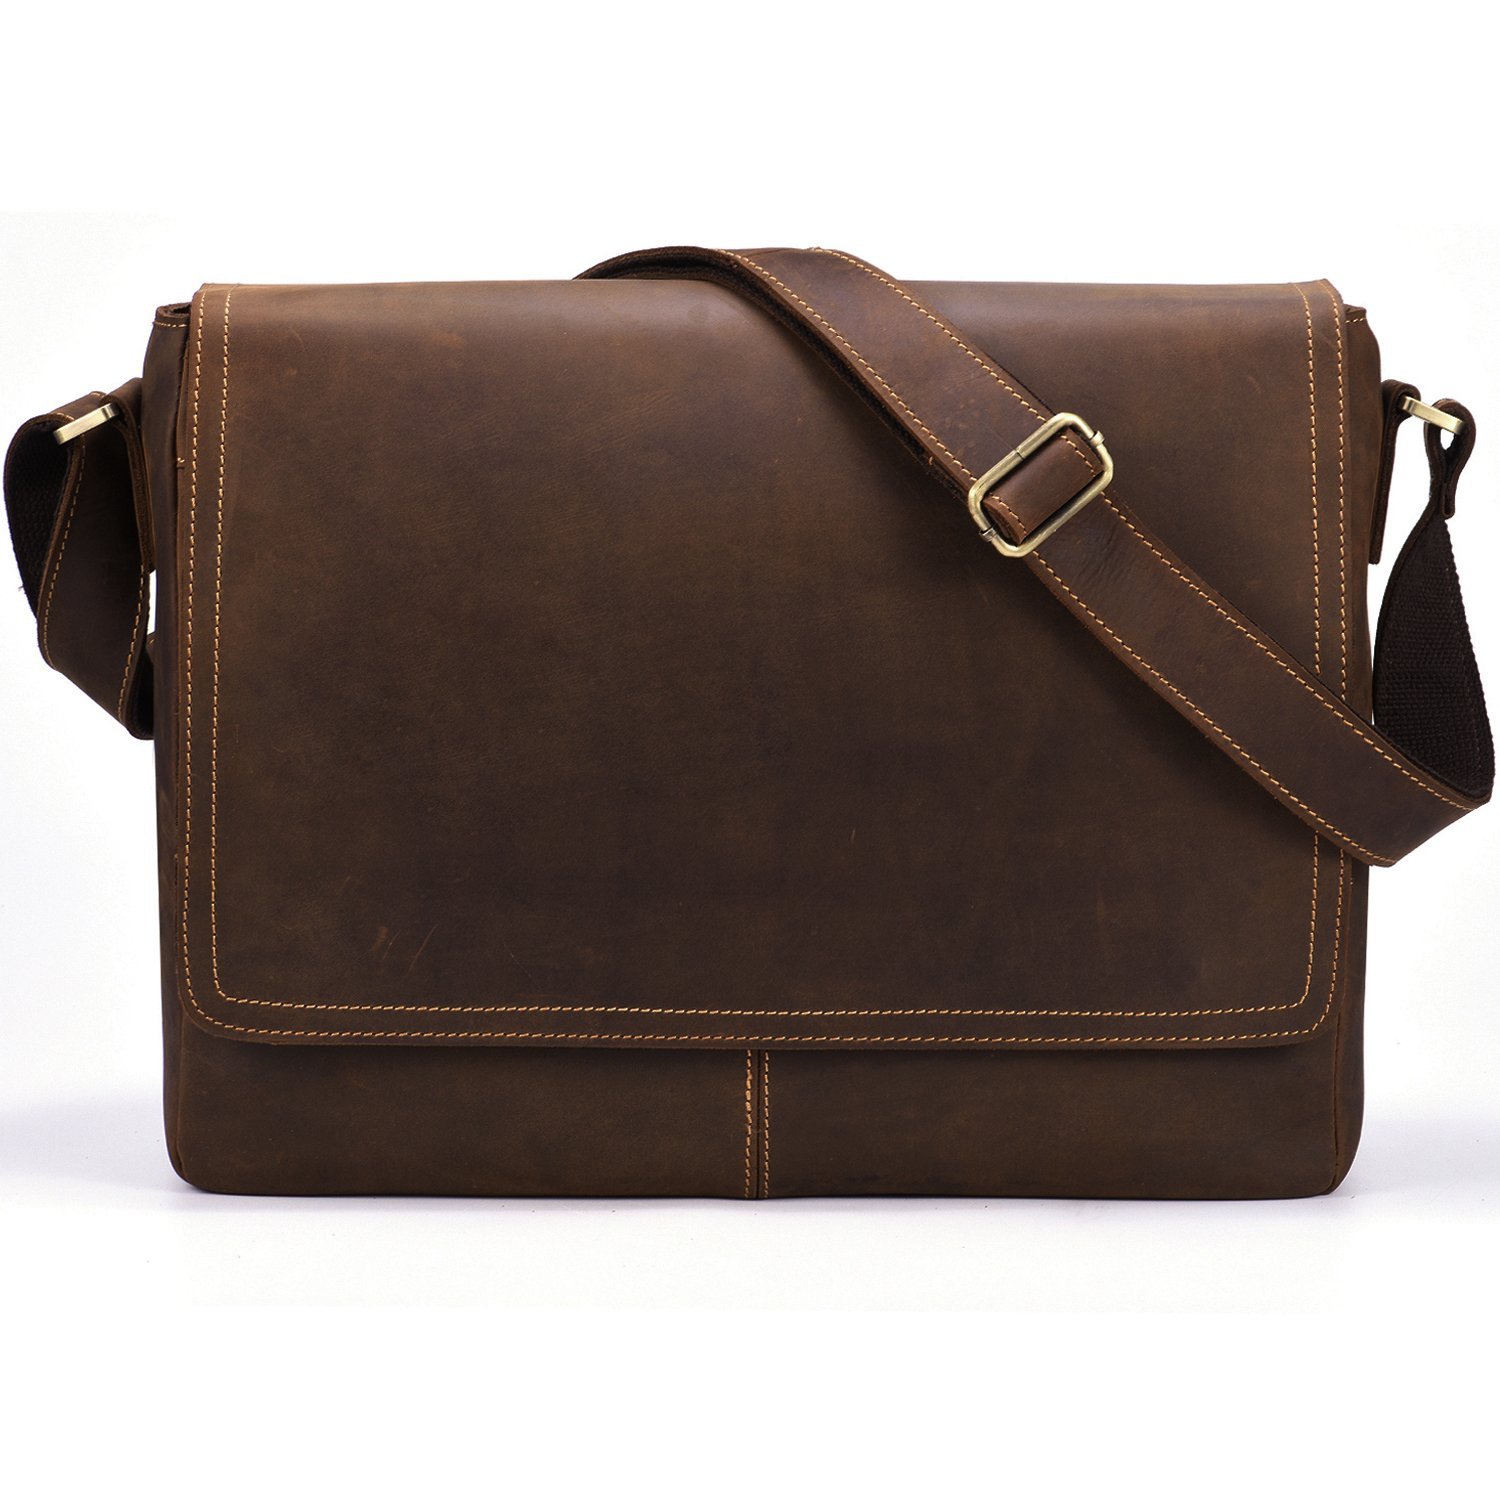 Kattee Mens Leather Flapover Everyday Work Laptop Messenger Bag ...